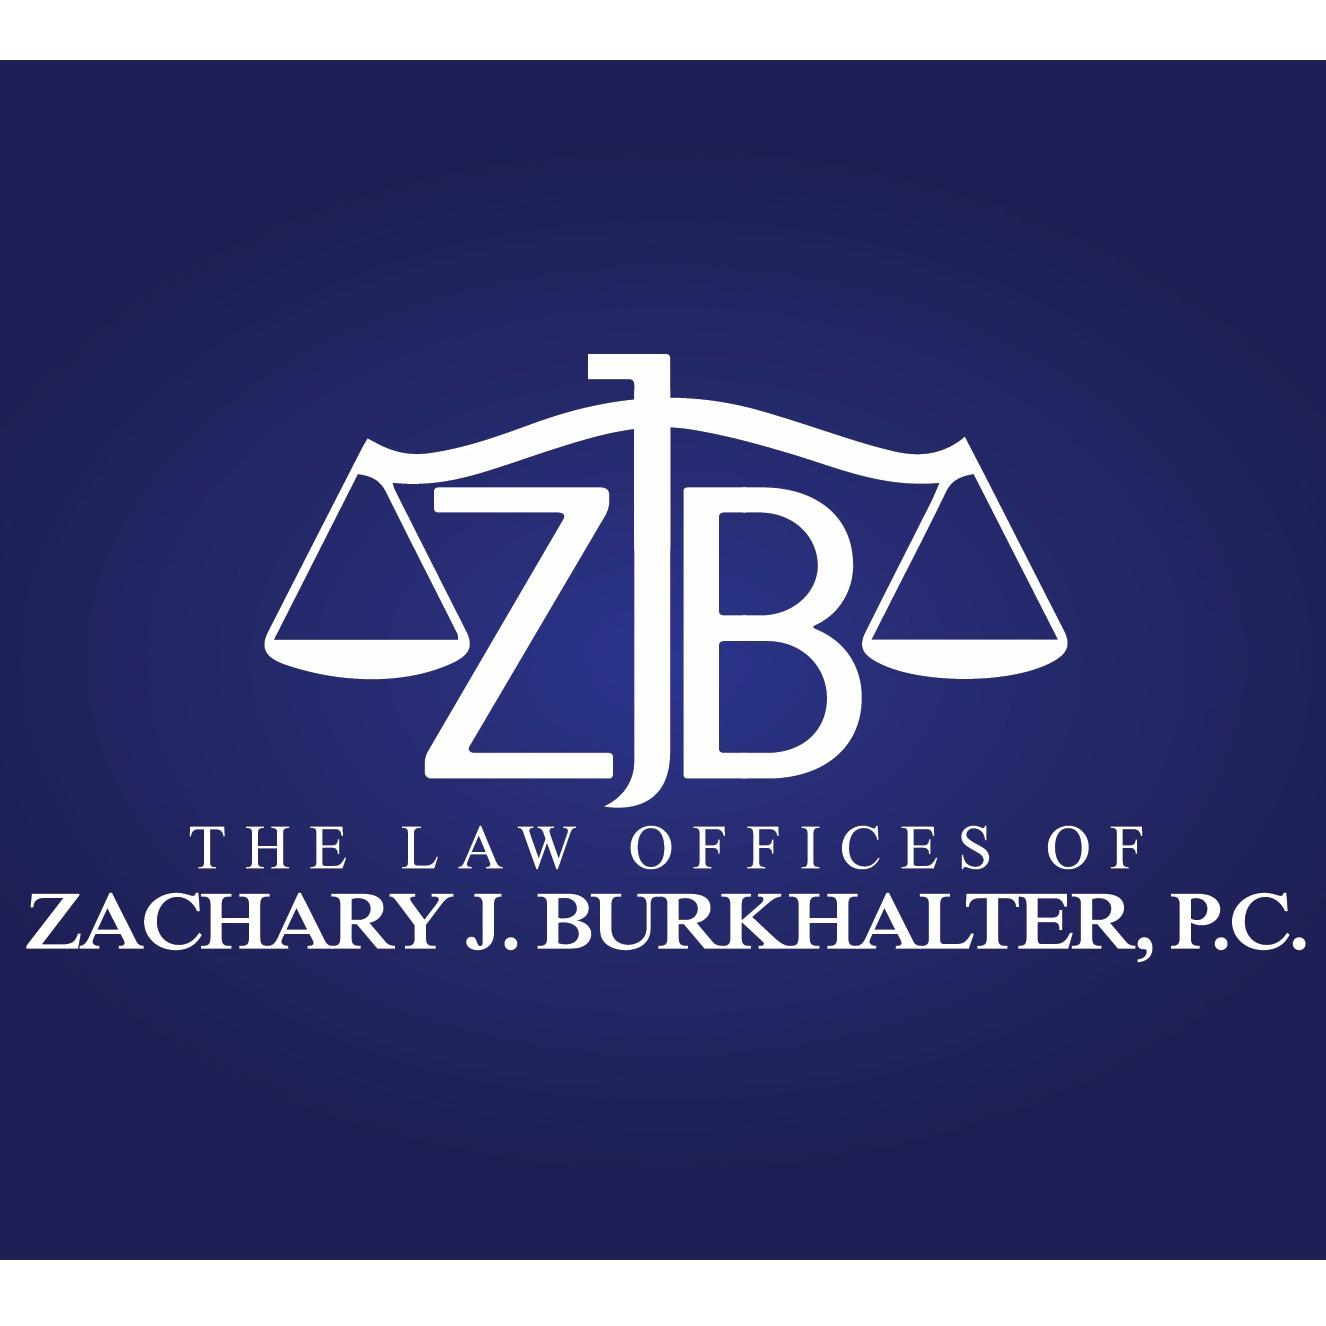 The Law Offices of Zachary J Burkhalter, PC - Rome, GA 30165 - (706)290-9037 | ShowMeLocal.com